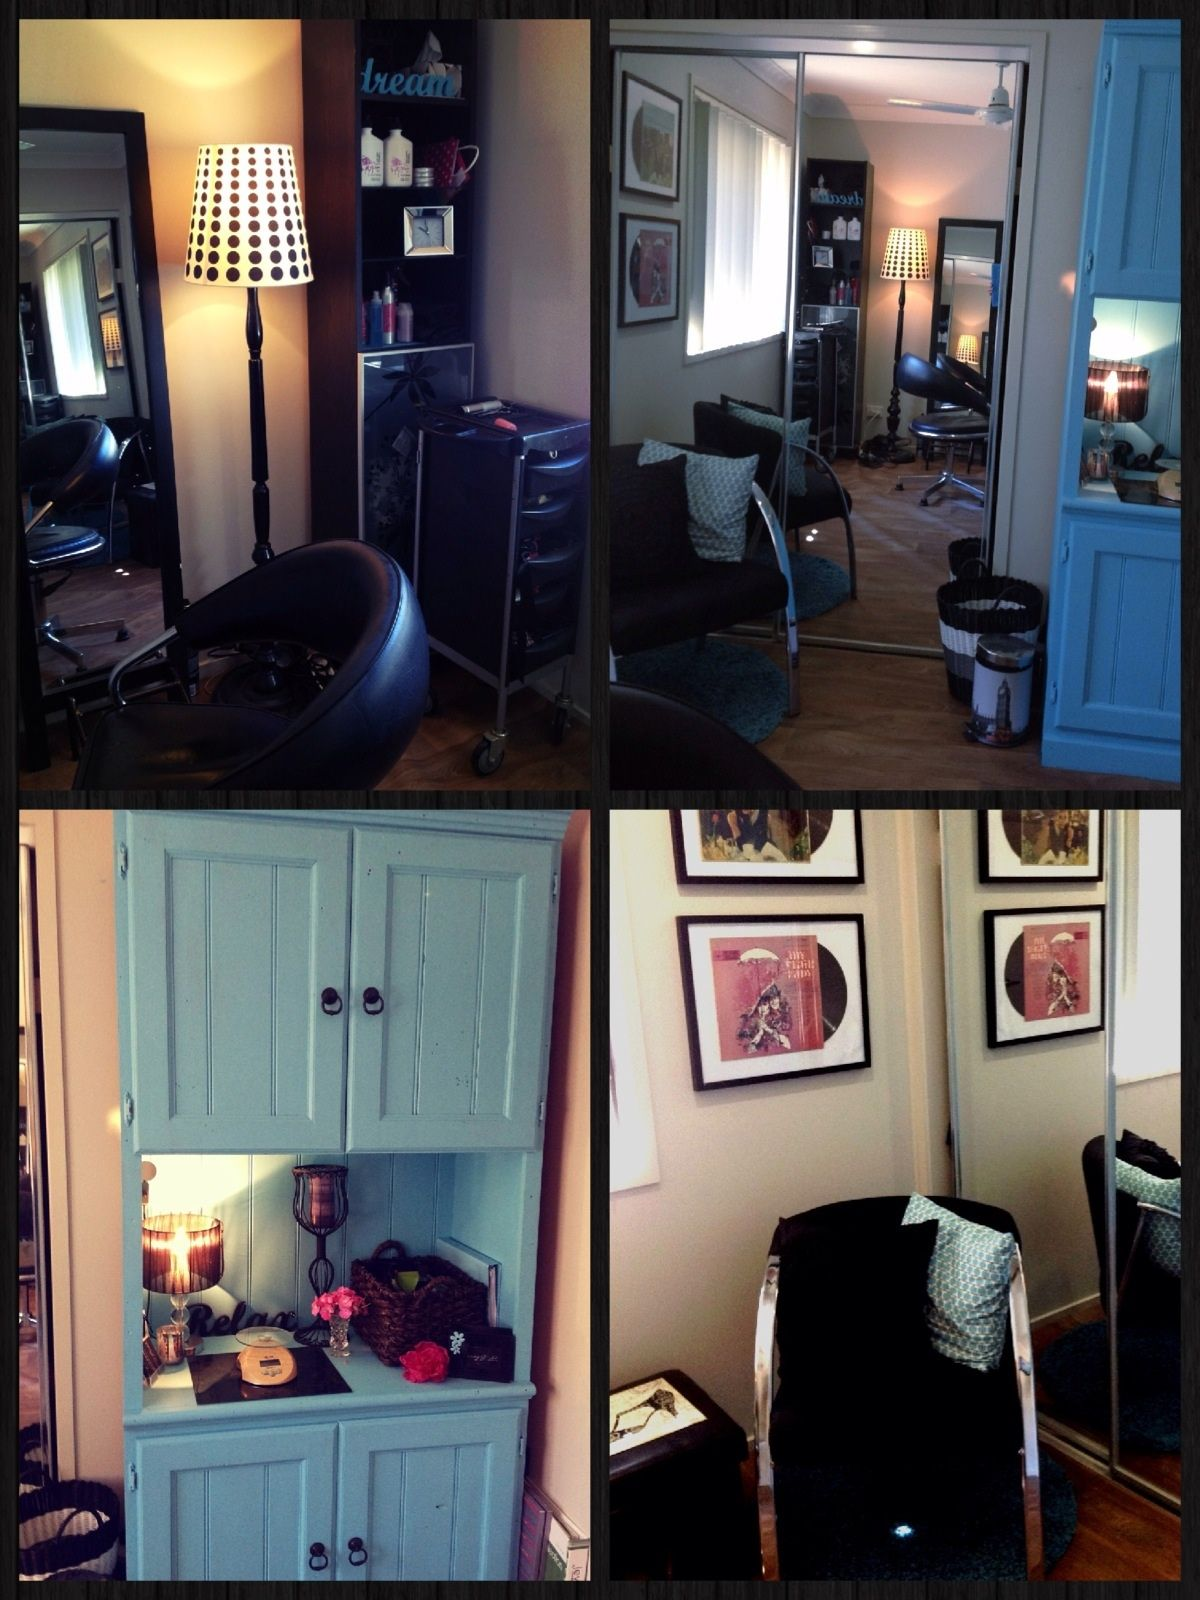 This is my home hair salon I would love to do bigger and better one